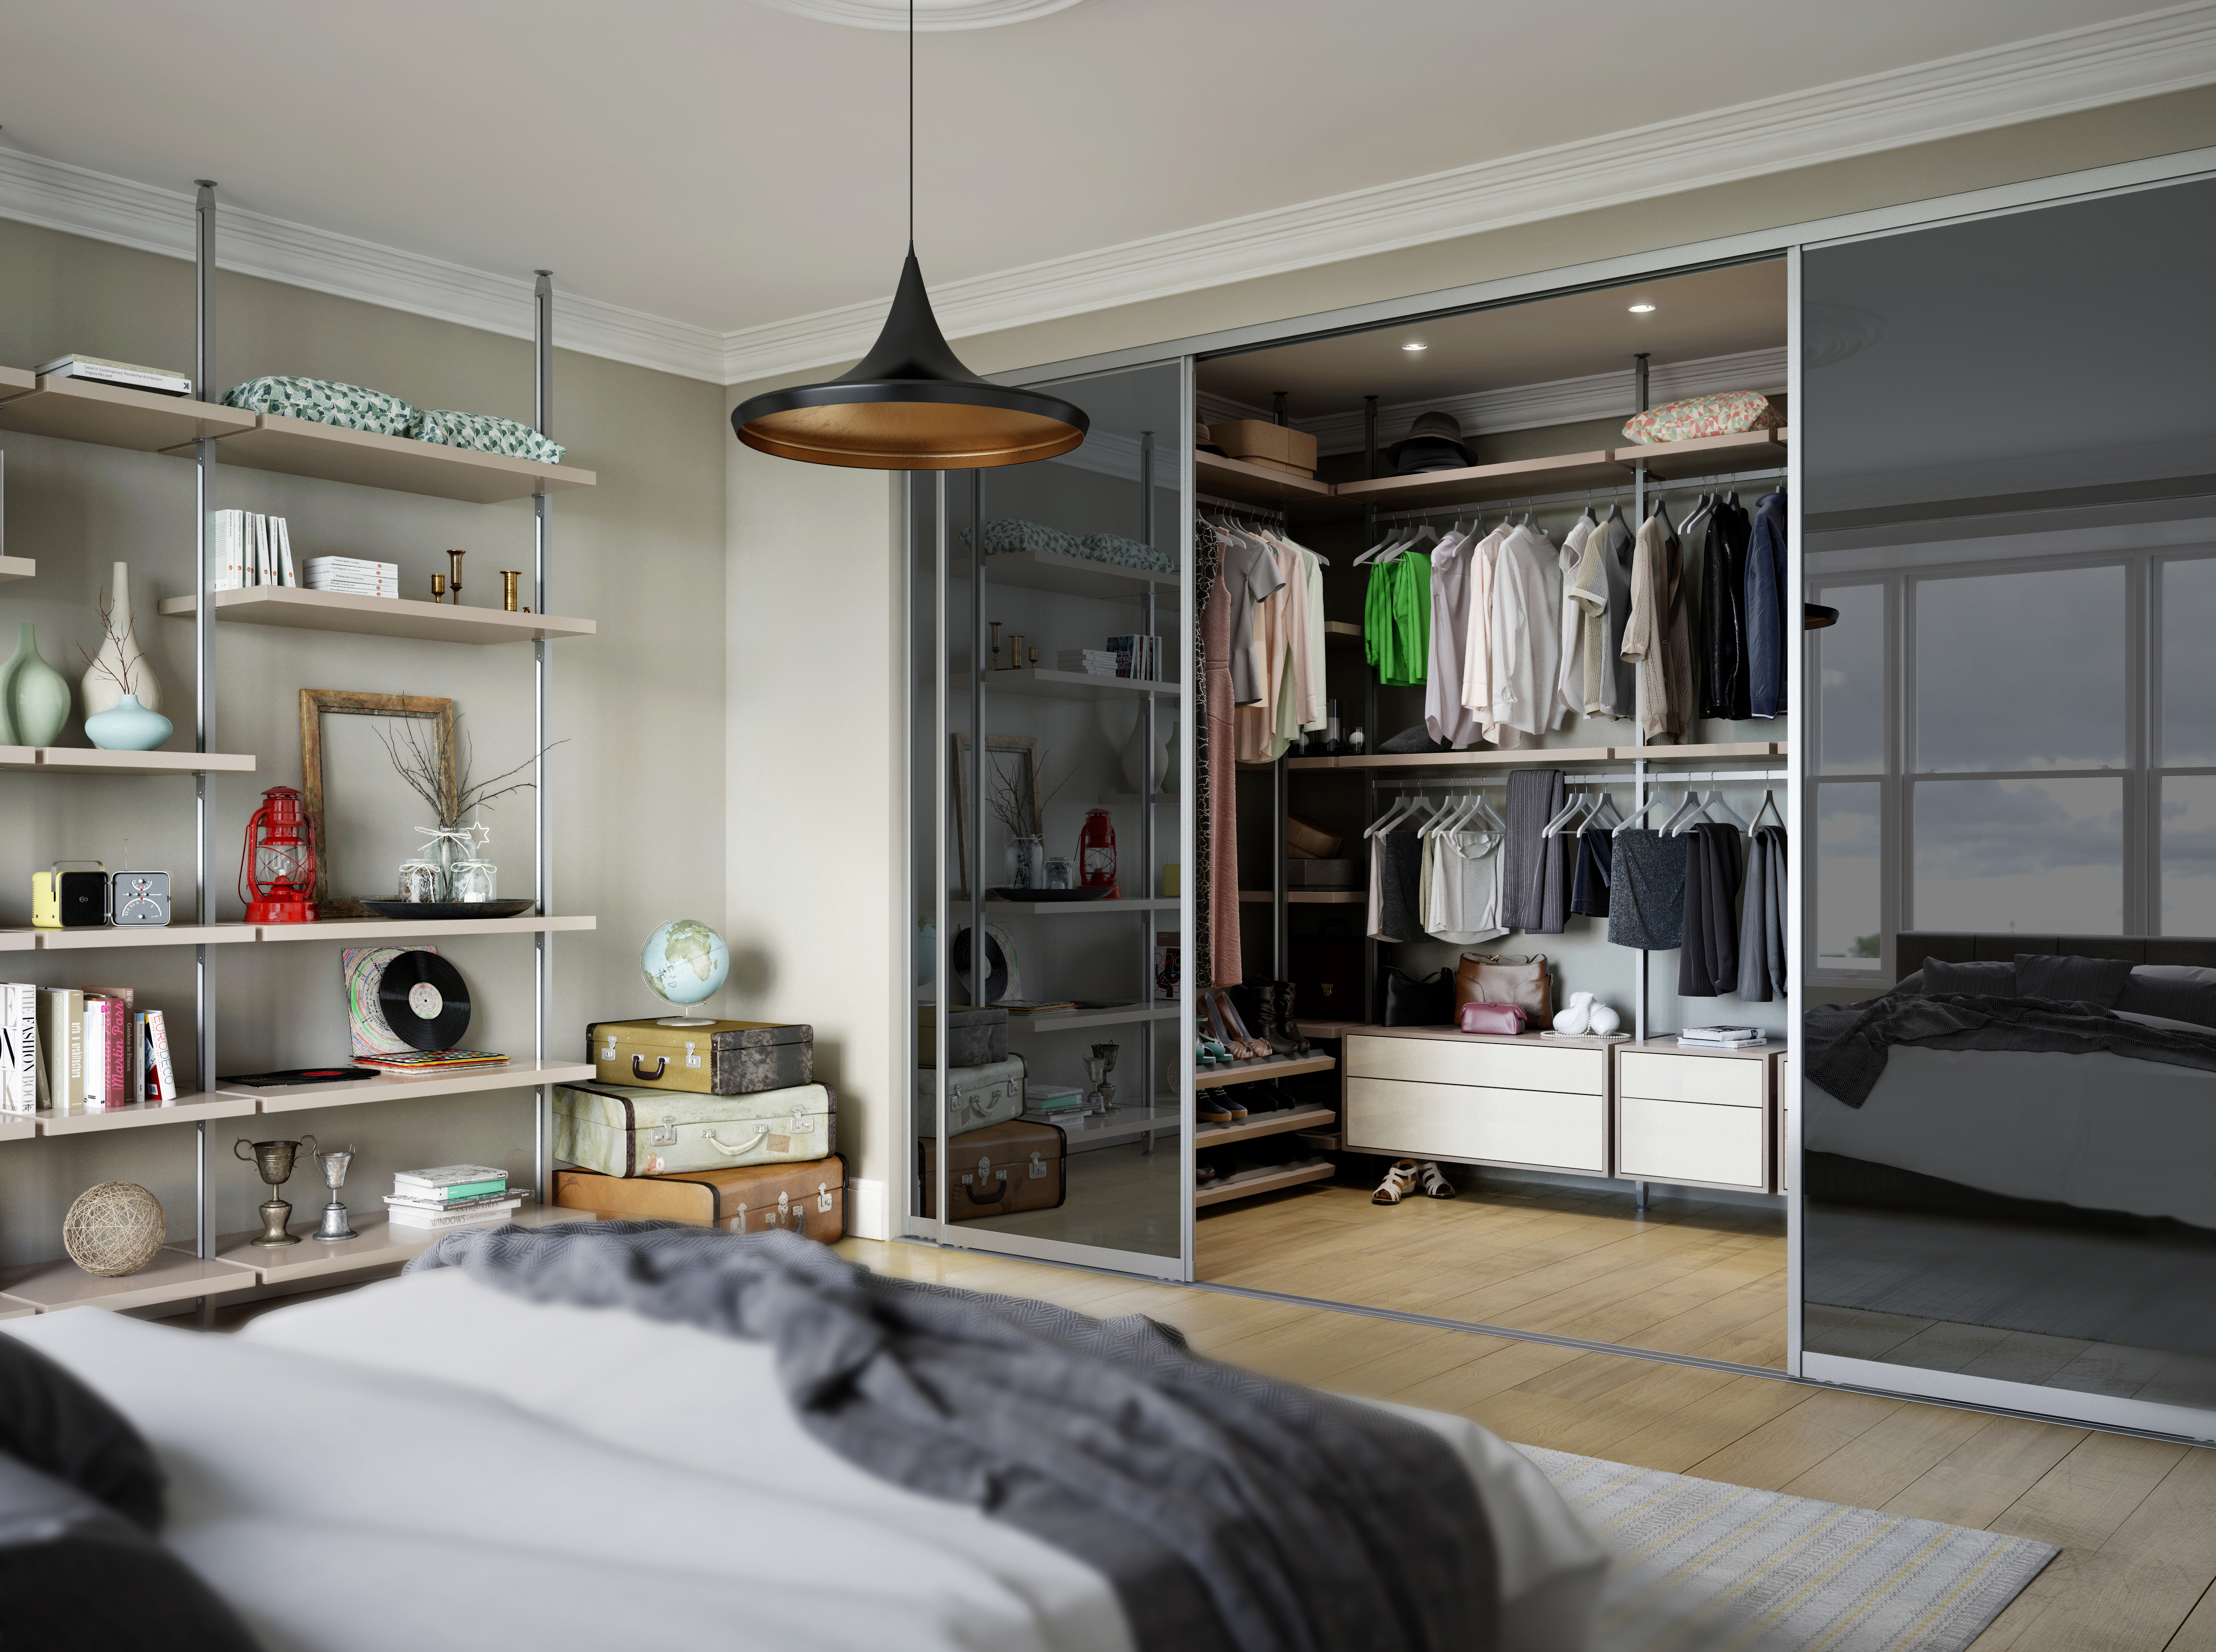 Walk in wardrobe designs how to design your own spaceslide for Create your own bedroom layout